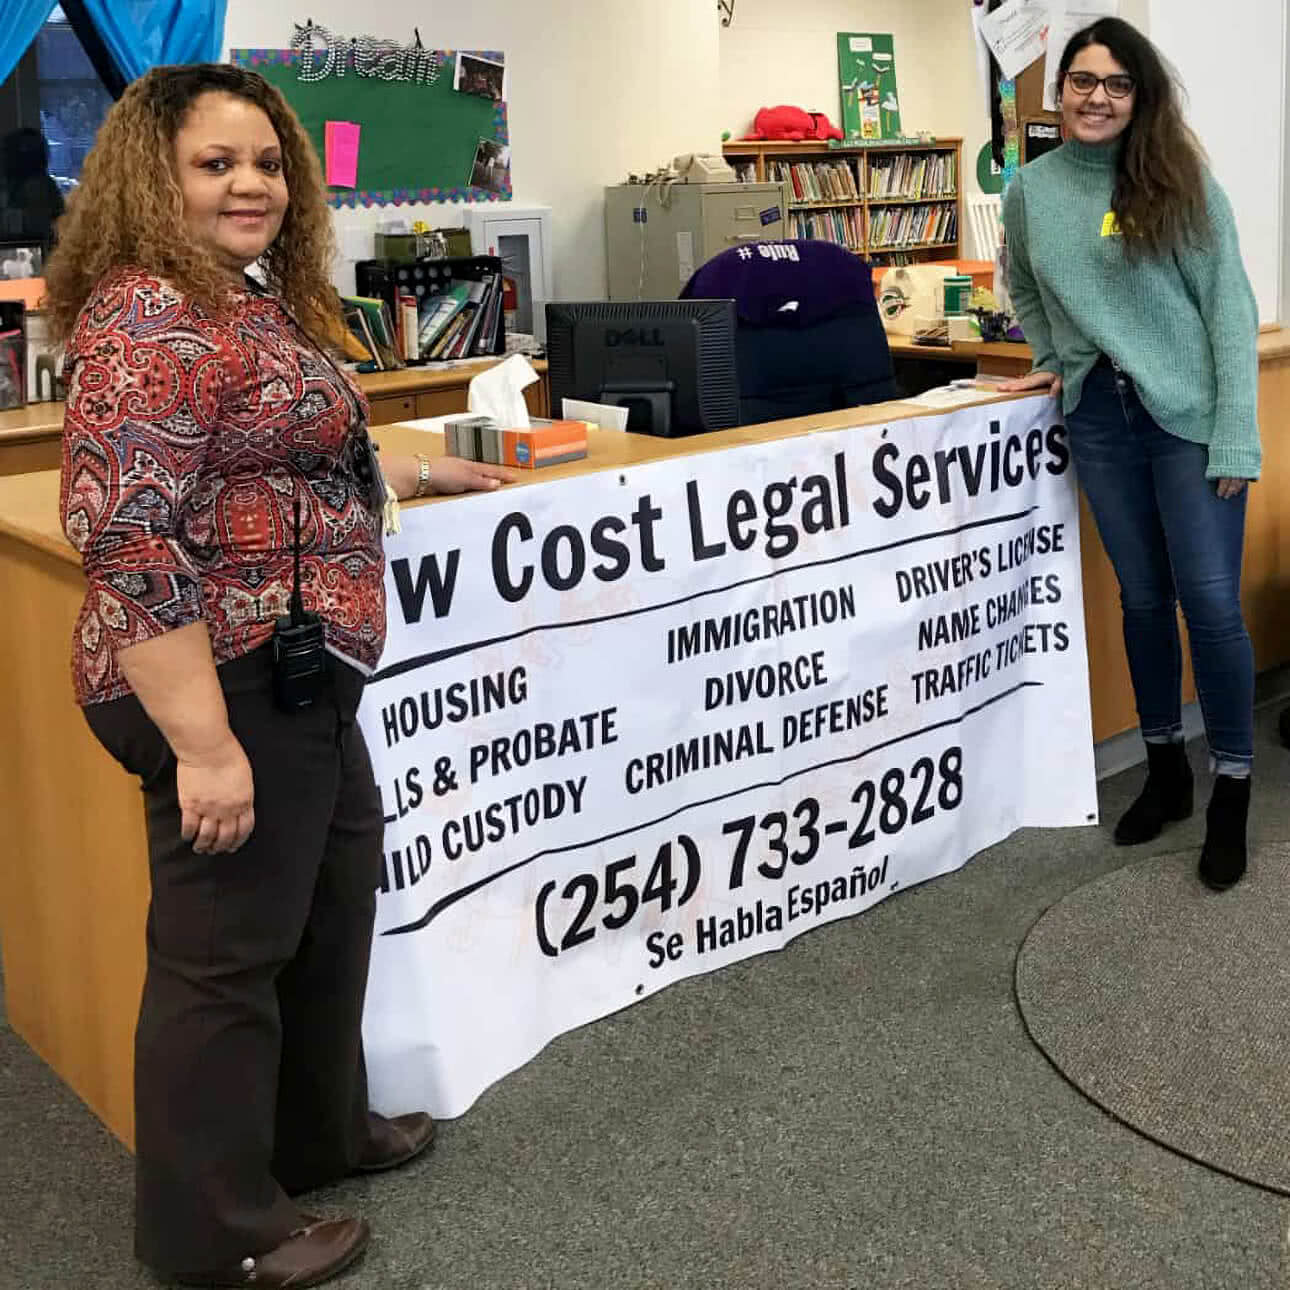 Greater Waco Legal Services staff helping the community.